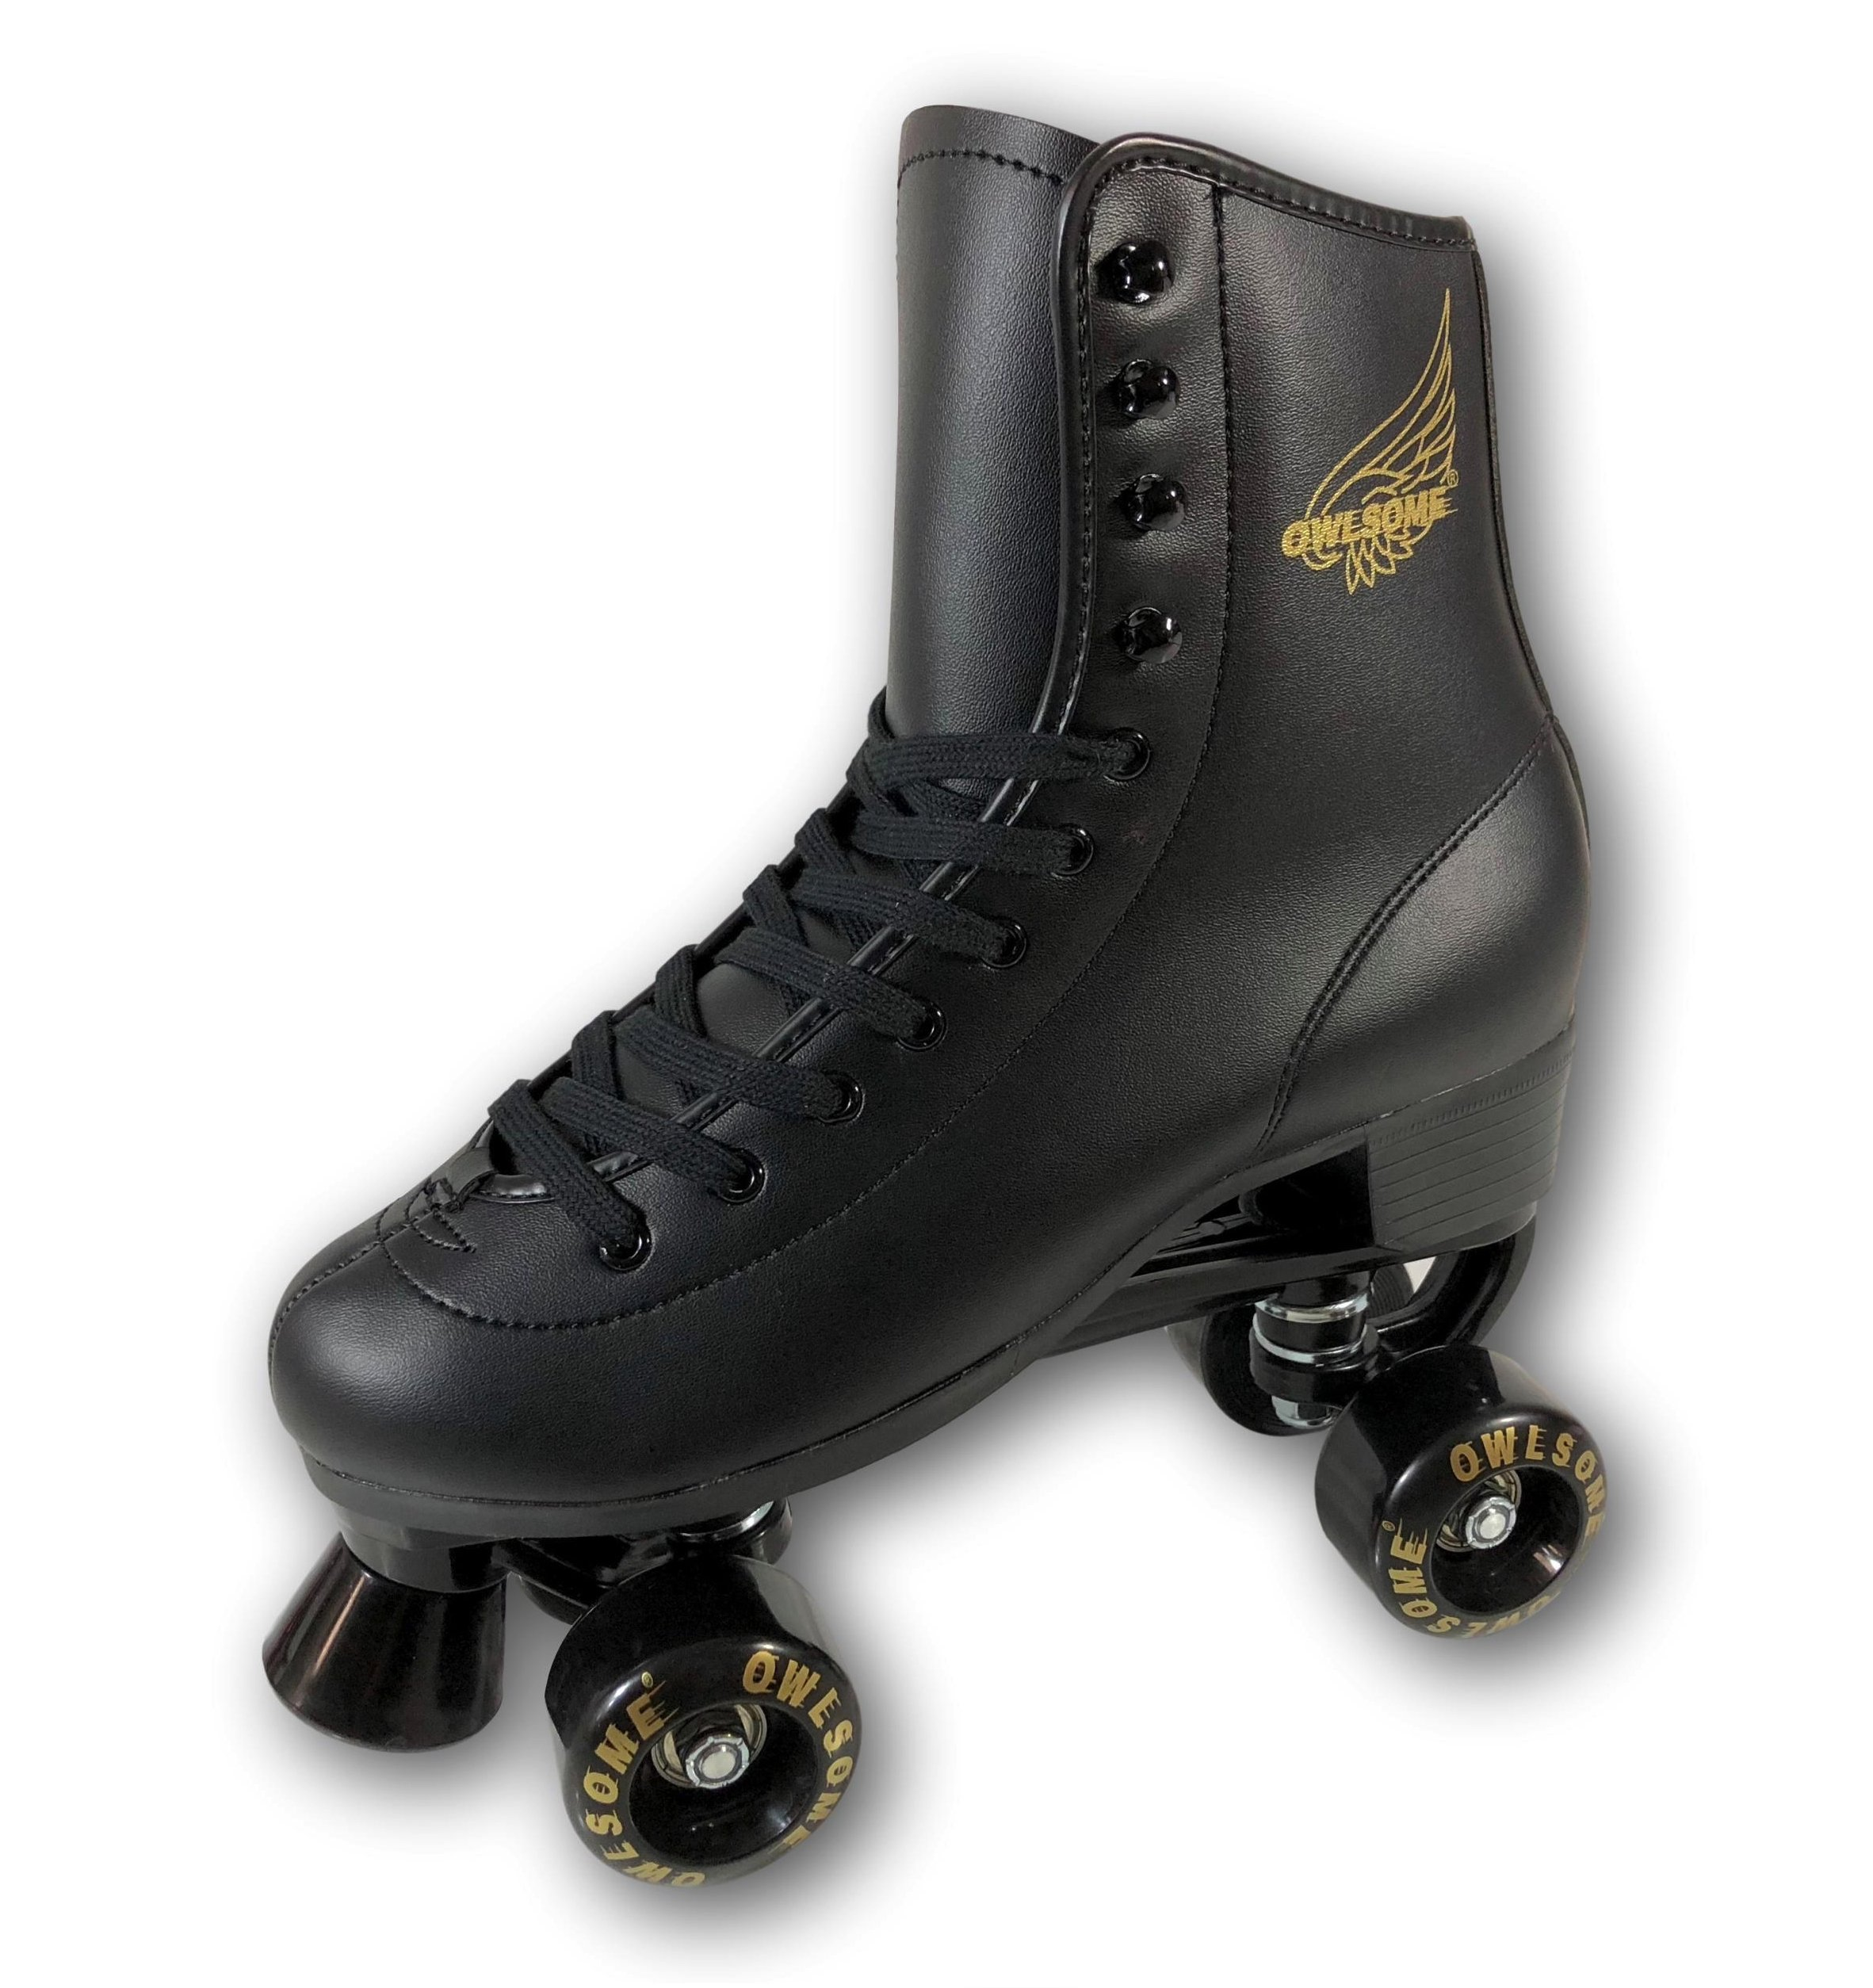 Owlsome Classic High Top Boot Style Soft Faux Leather Roller Skate For Adult & Youth (Black, 6 (9.75''/24.8cm))